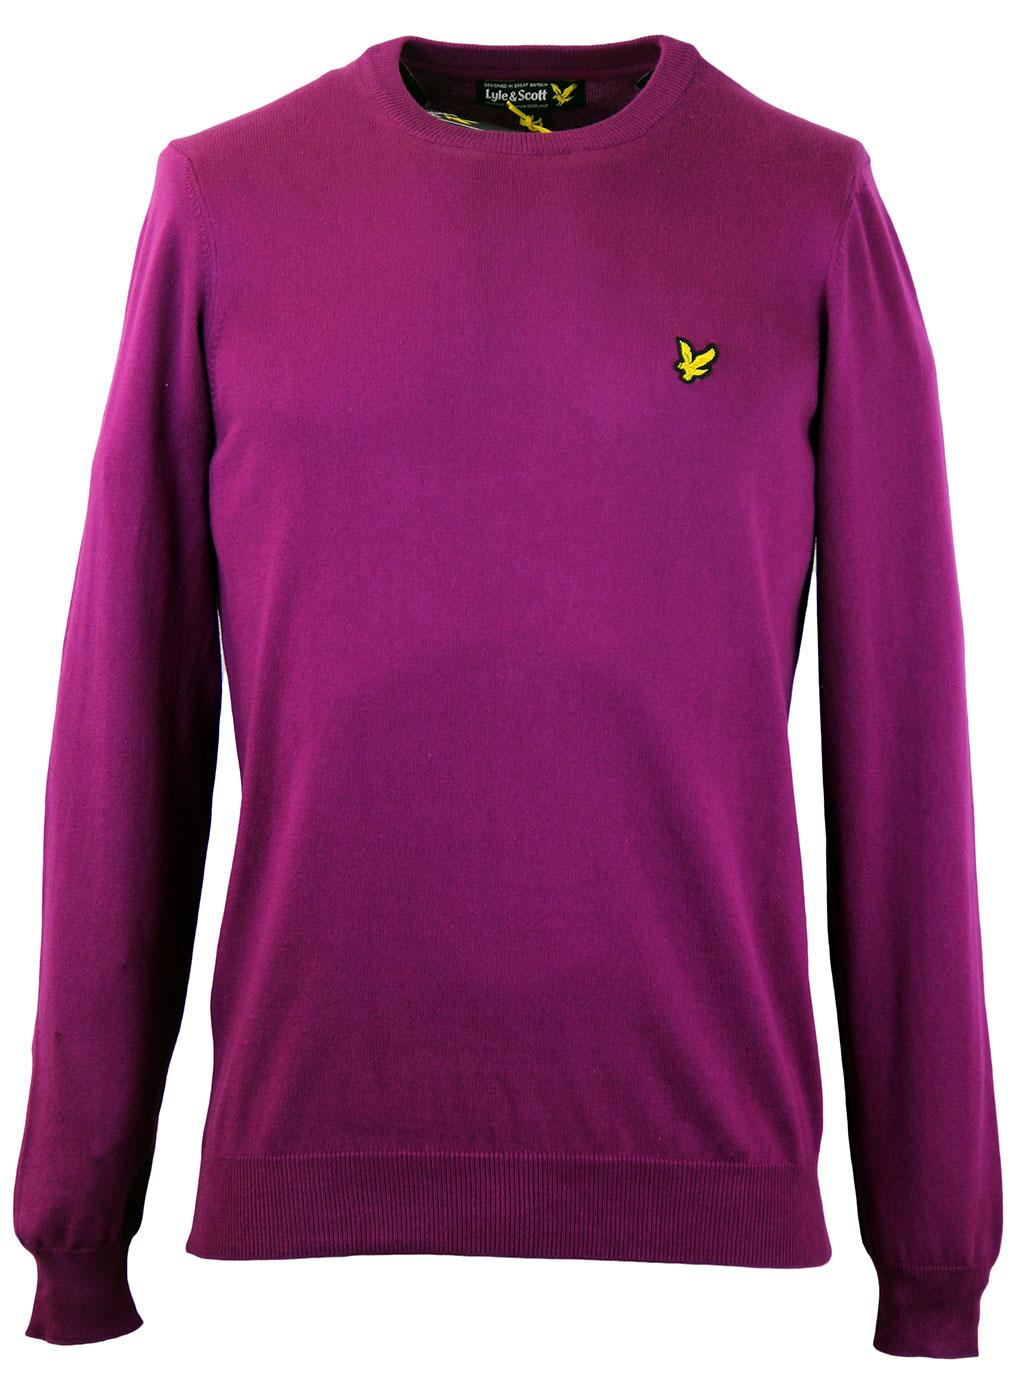 LYLE & SCOTT Retro Mod Cotton Crew Neck Jumper BC